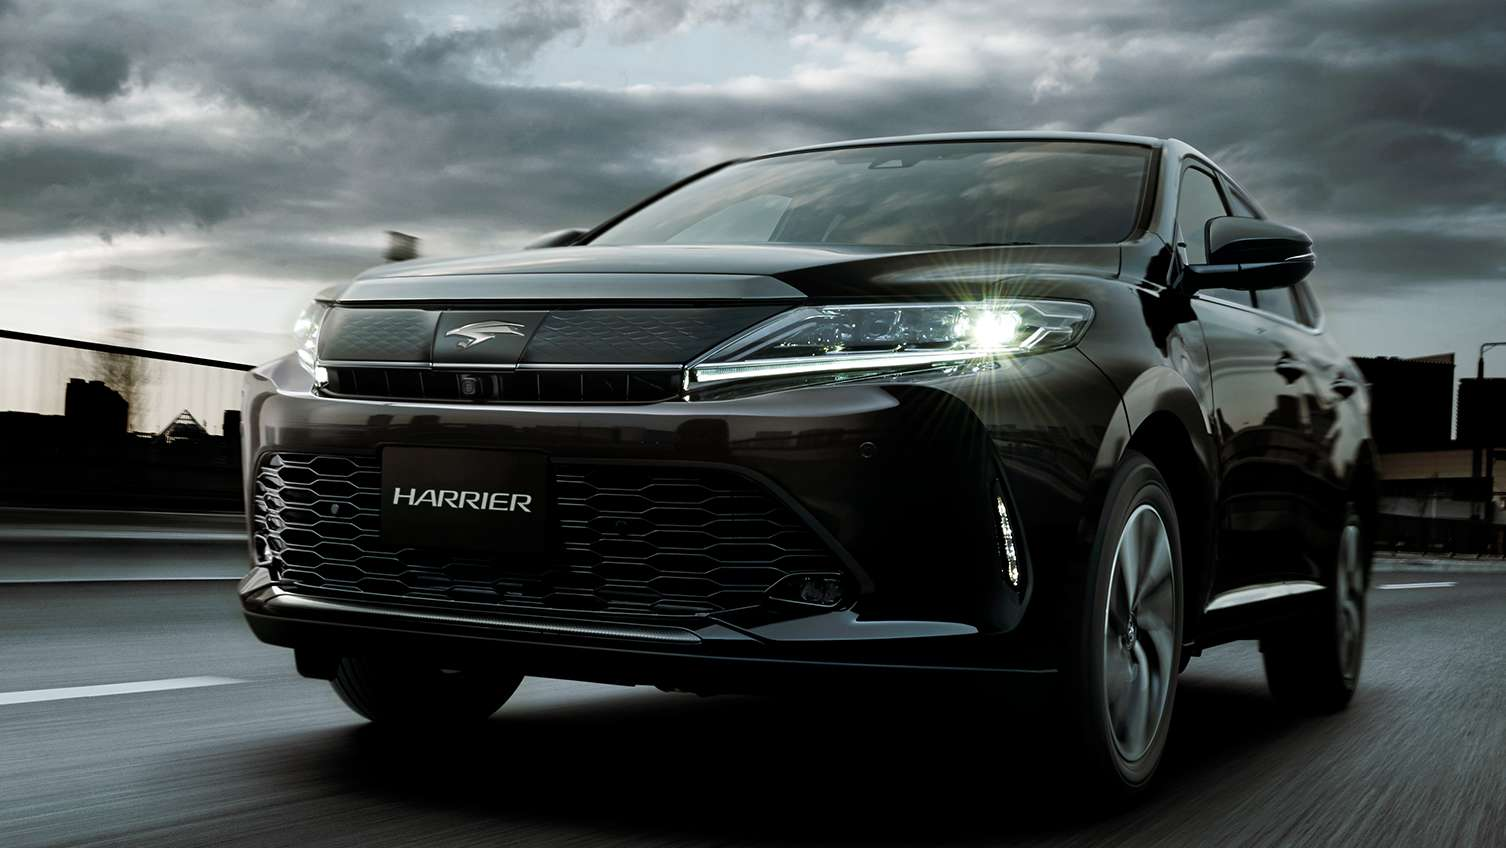 Toyota Harrier 2018 >> Toyota Harrier facelift makes Japan debut - 2.0 turbo; Singapore to get it as official import ...